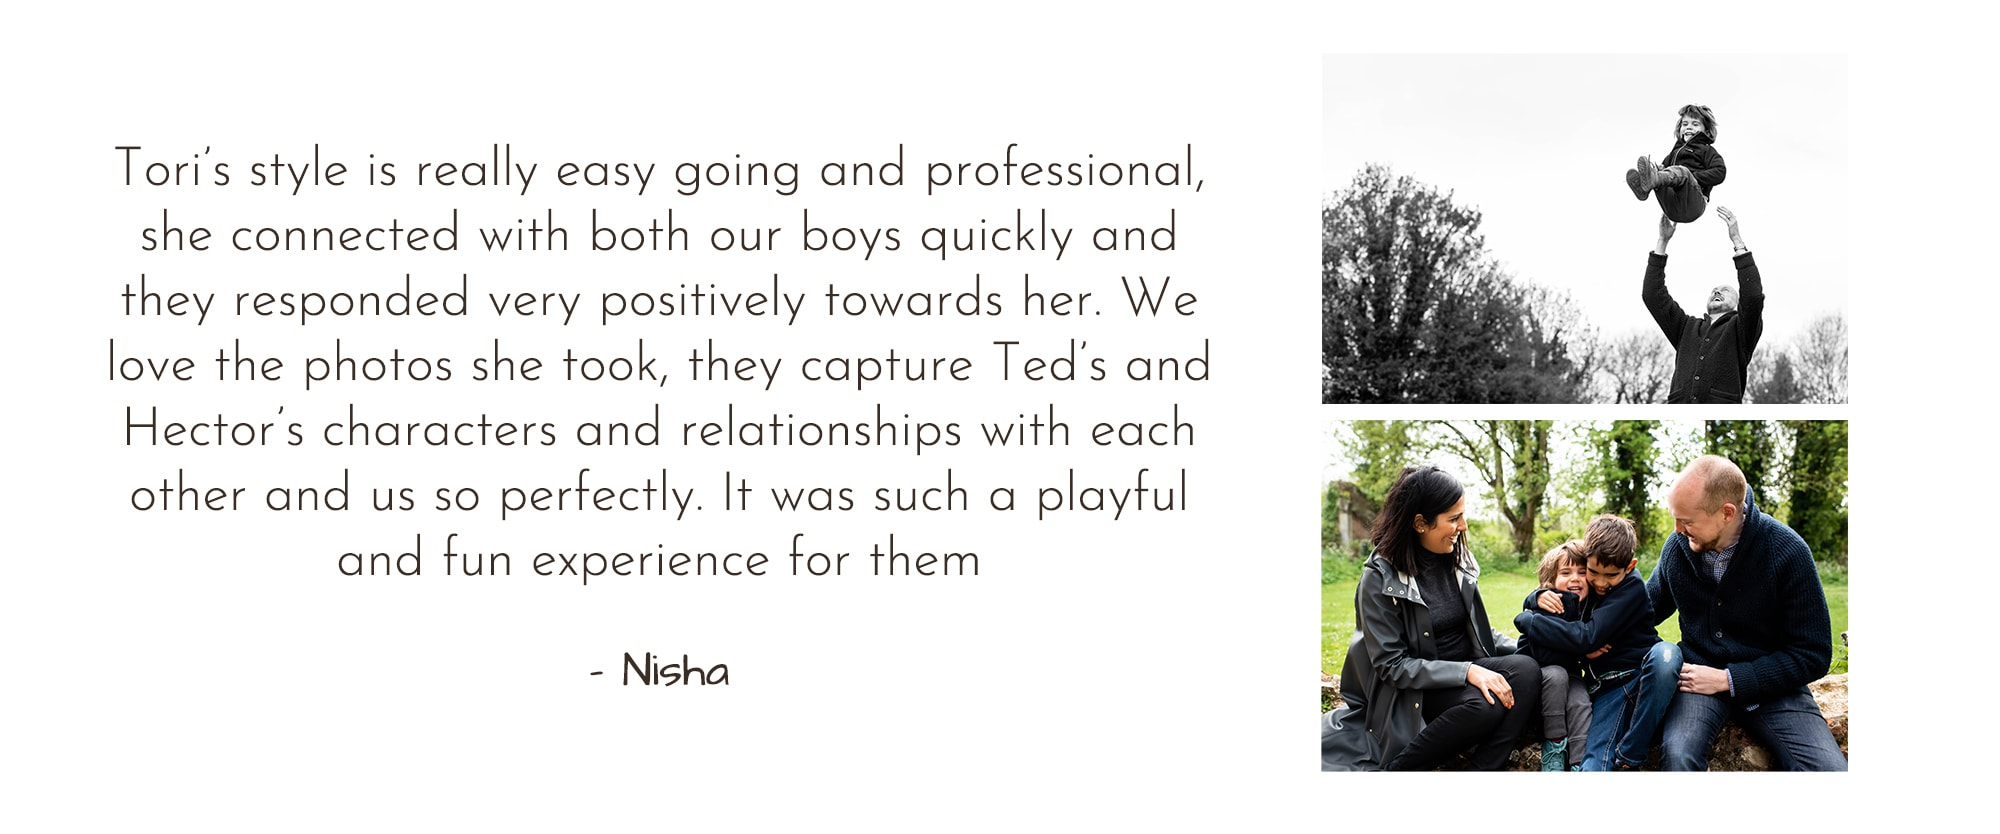 hertfordshire family photographer testimonial